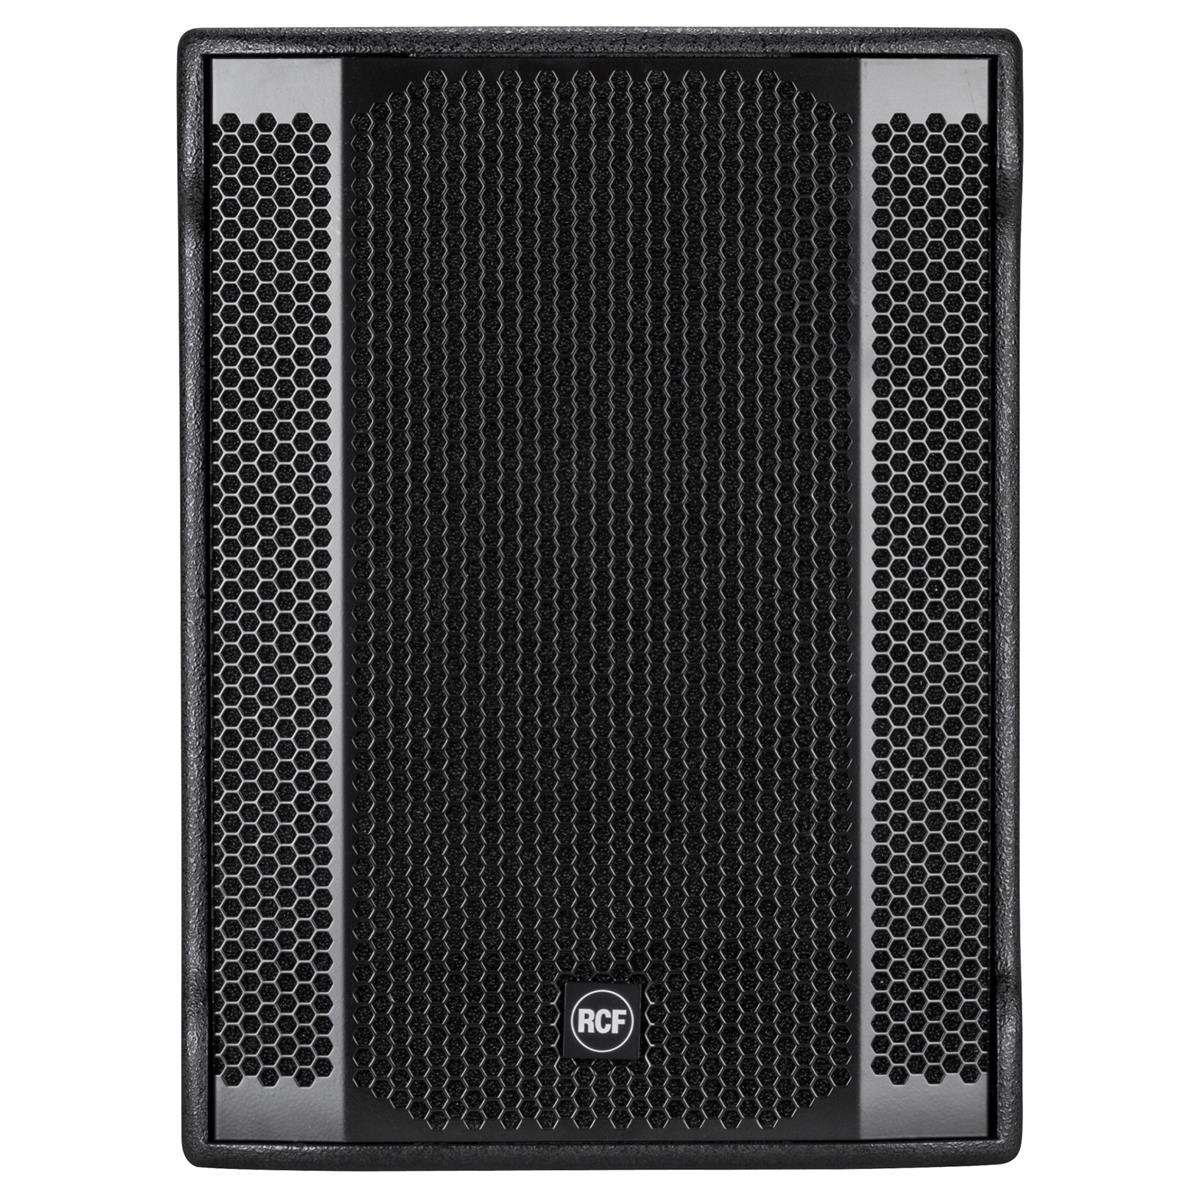 RCF 18in Bass reflex Active Sub, 1100Wrms, 2200Wpeak